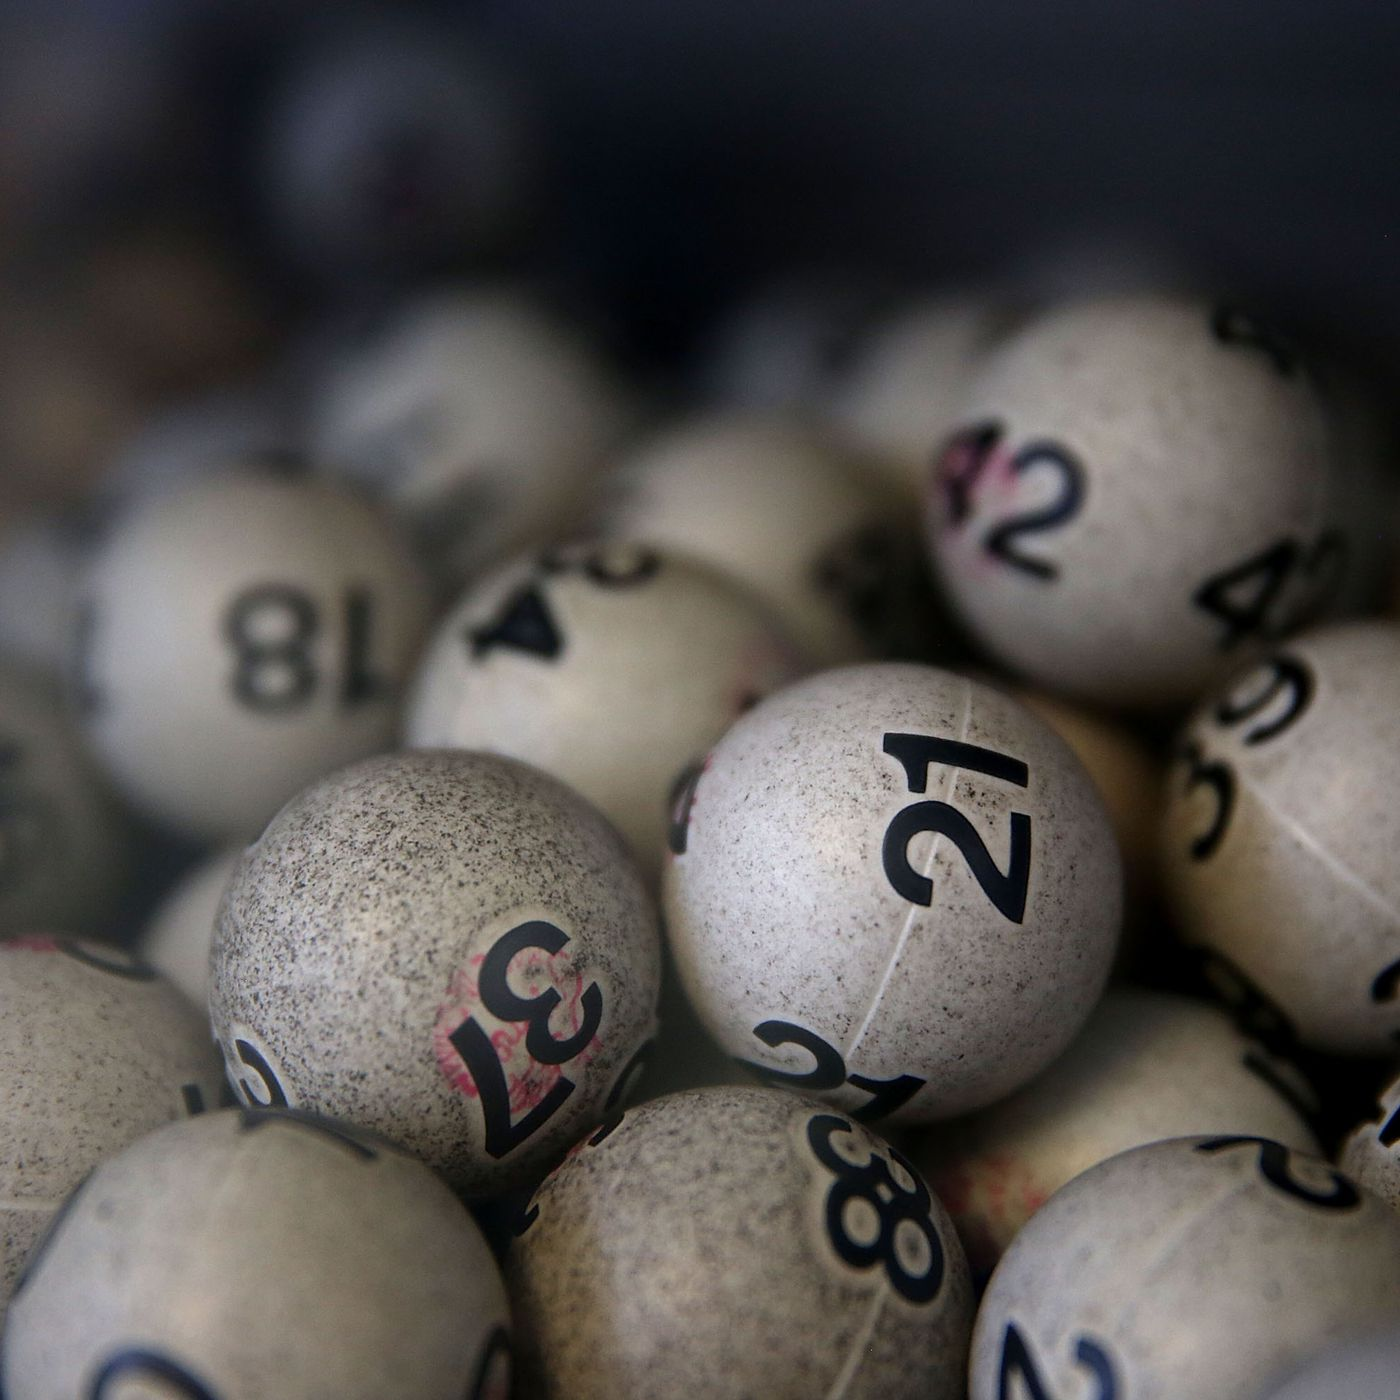 4 ways the lottery preys on the poor - Vox